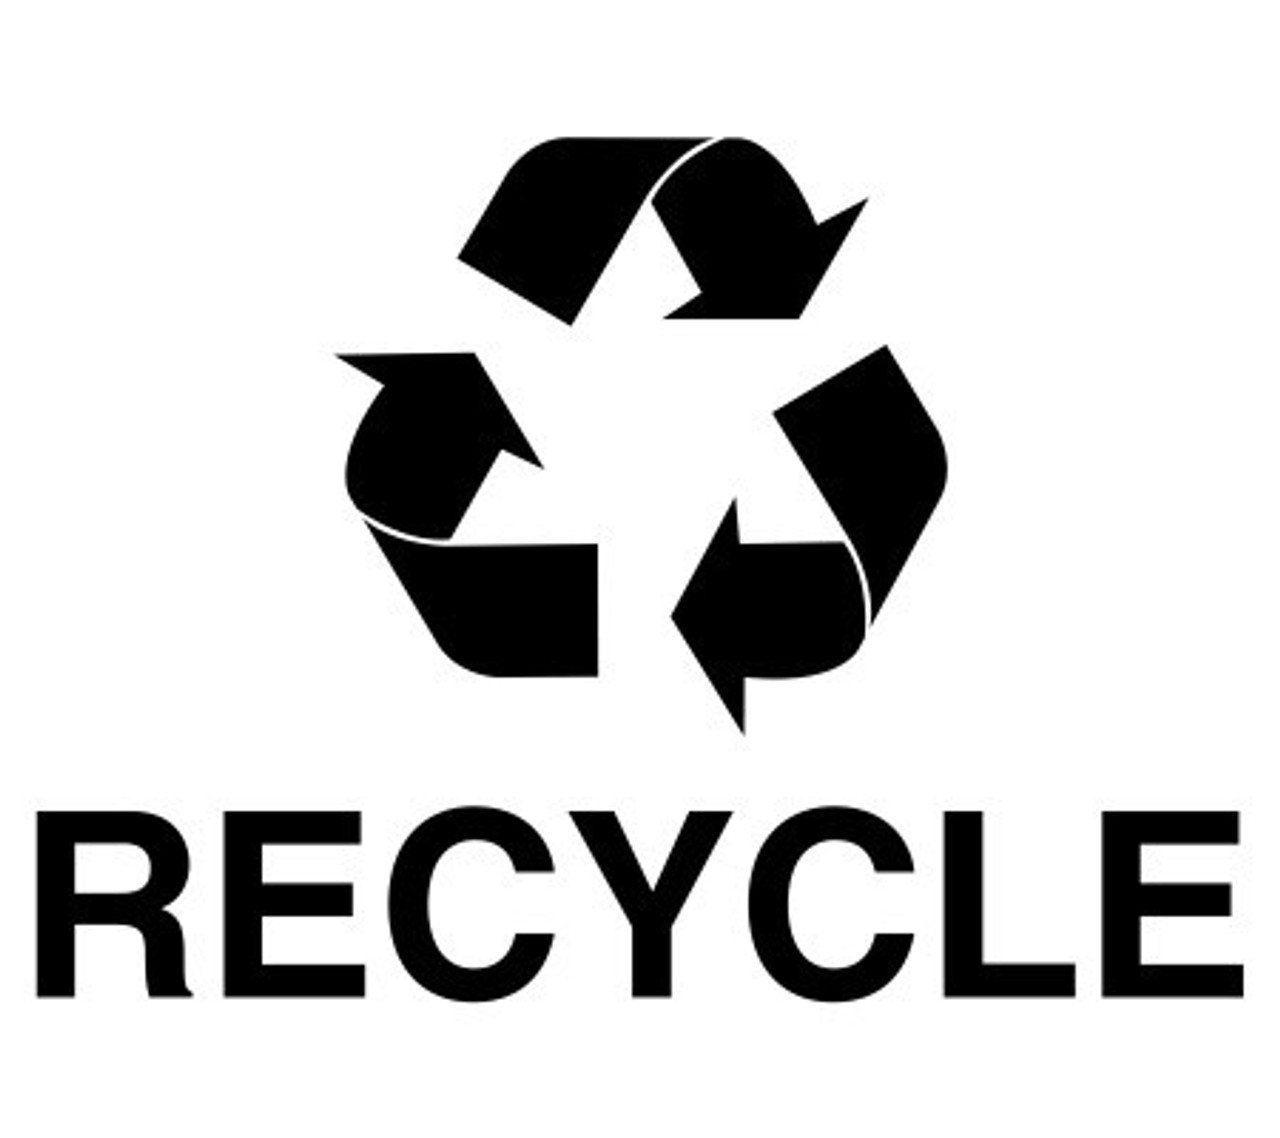 Optional Black Recycle Decal Available (NOT Pre-Applied) For STAINLESS STEEL ONLY